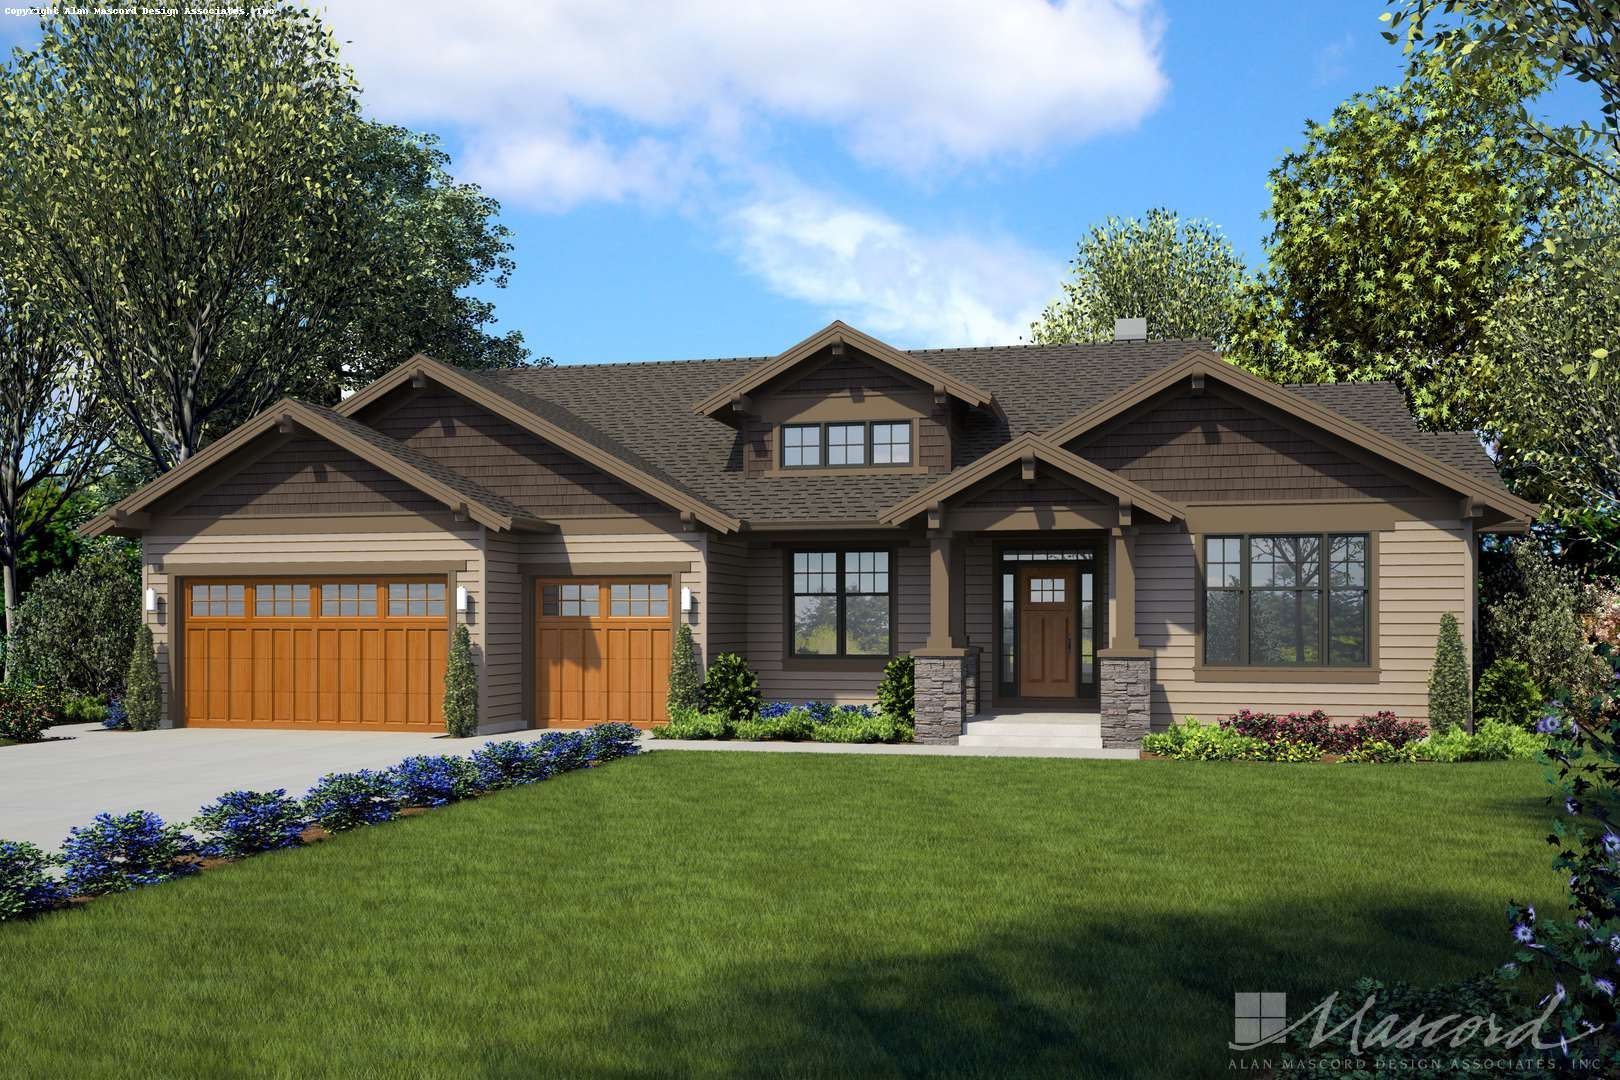 Alan Mascord Design Associates Plan 22157ba Front Rendering In 2020 Ranch House Plans Craftsman Style House Plans Craftsman Ranch